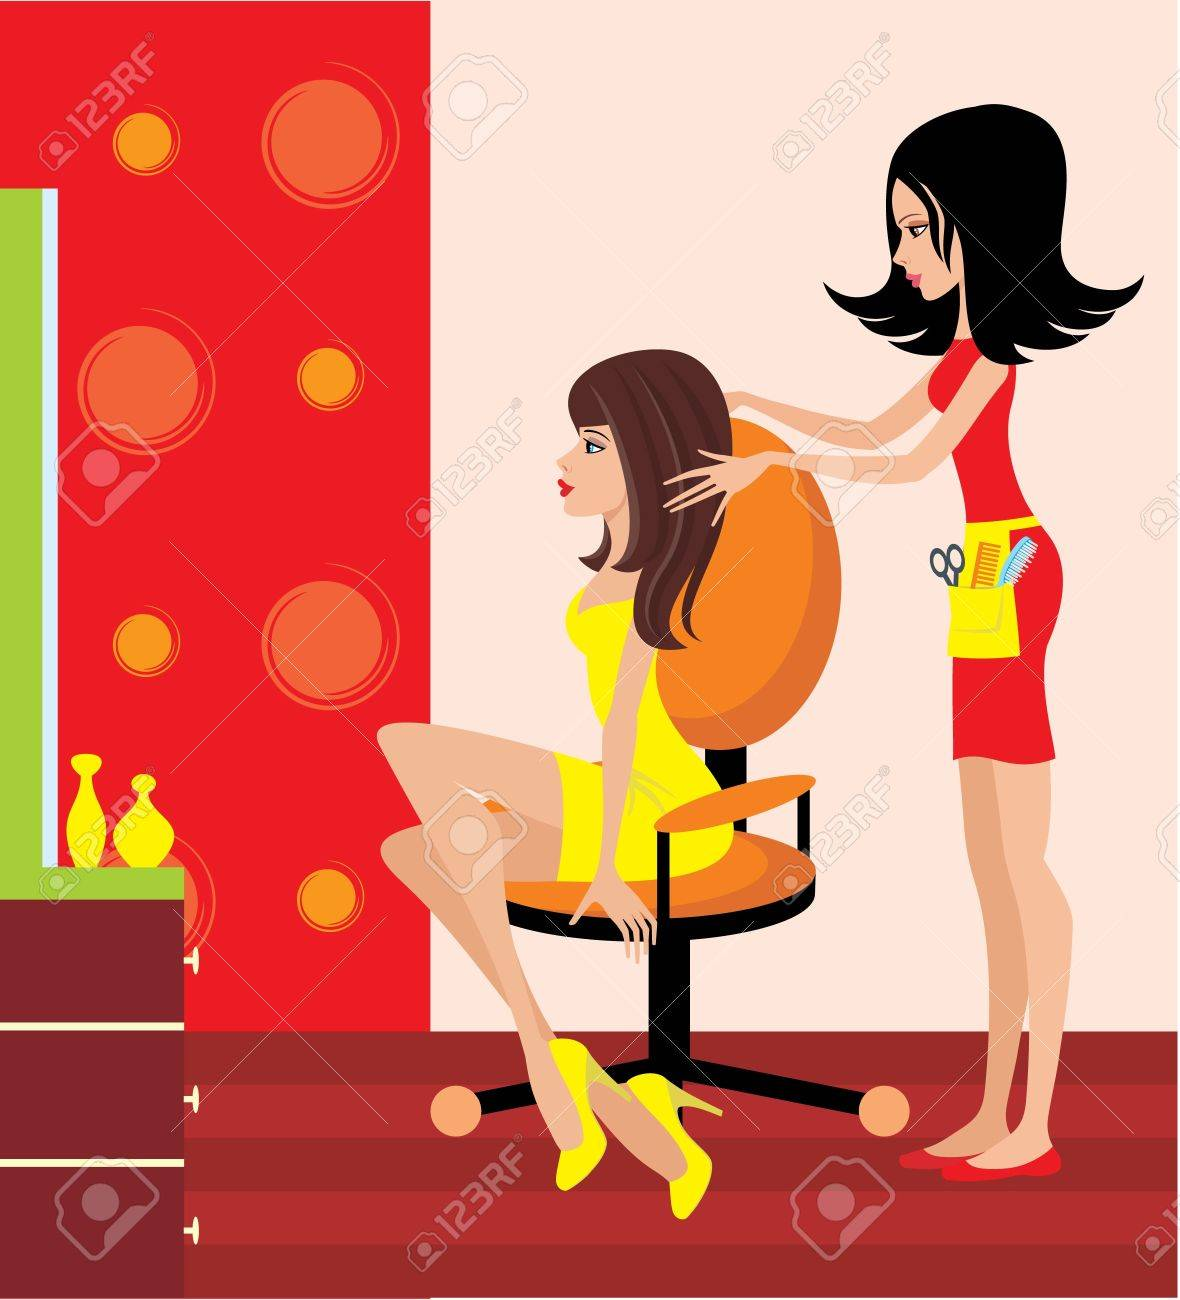 Hair salon chair isolated stock photos illustrations and vector art - Chair Salon Woman In A Beauty Salon